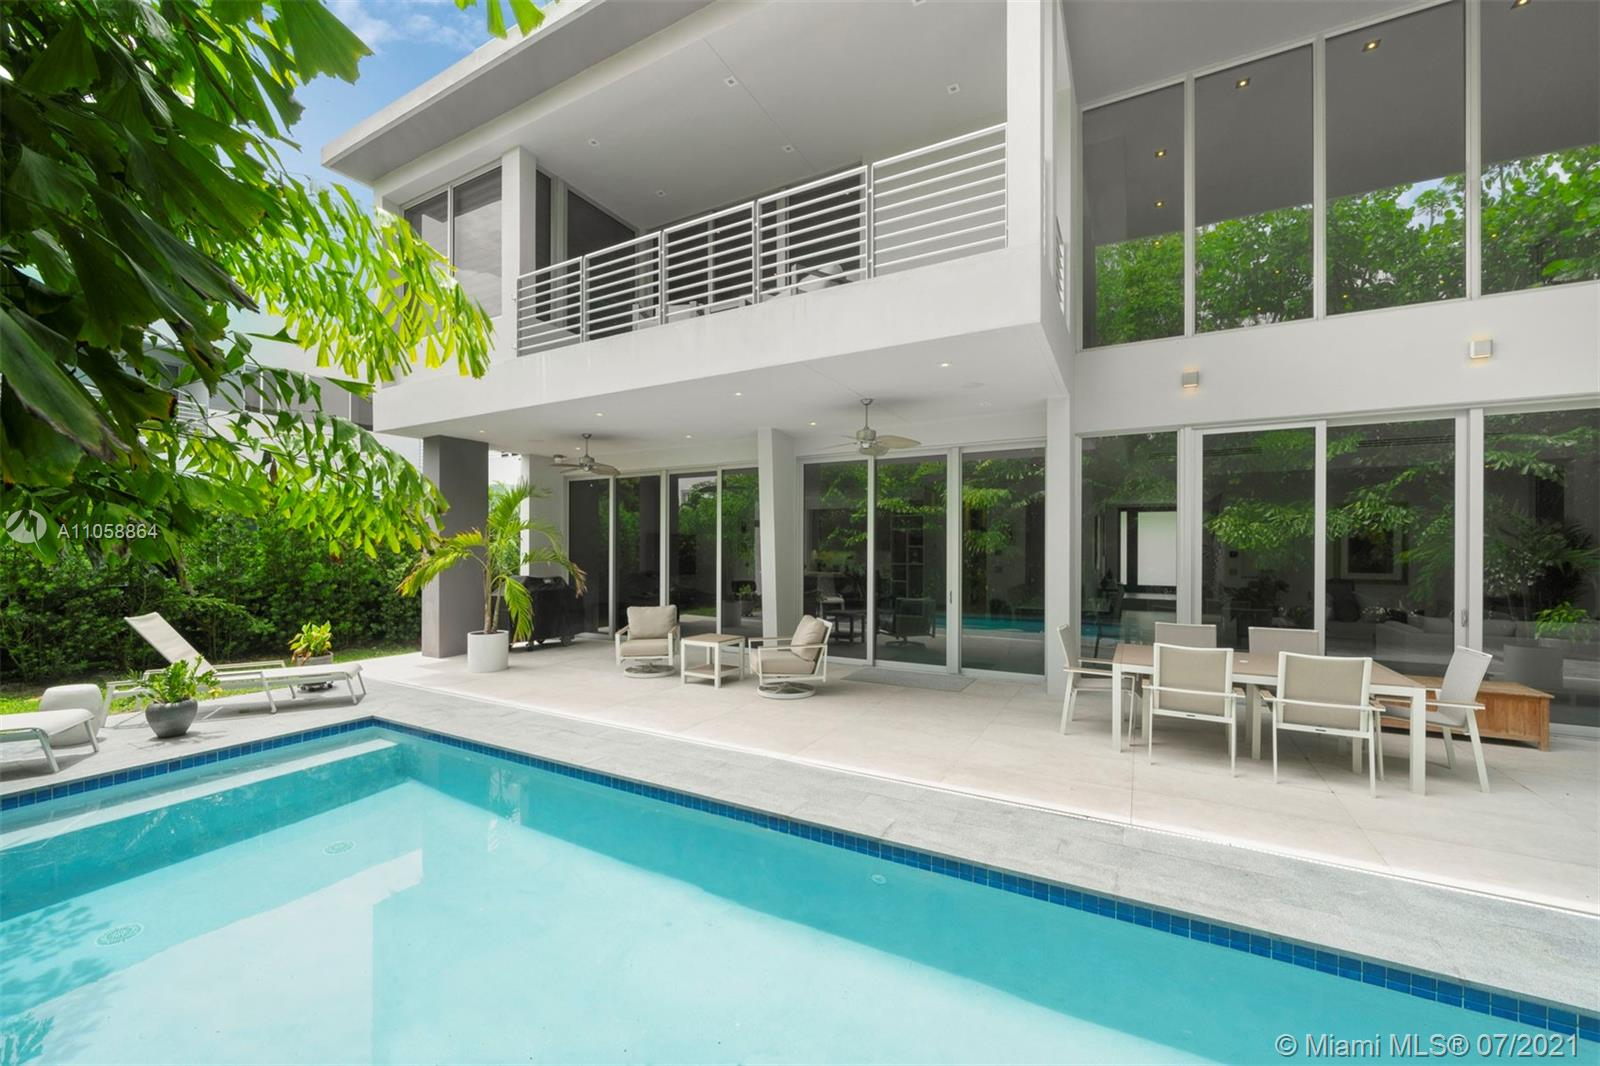 This modern and contemporary 6 BR, 6.5 BA home in Ponce Davis has 6,734 Total Sq.Ft. and spectacular light-filled living spaces. The entrance foyer reveals a spacious open floor plan with double-height floor-to-ceiling windows. The living, dining, family and kitchen areas open to a resort-style backyard, sparkling pool, and covered terrace ideal for outdoor dining. The kitchen comes with marble countertops, an island with seating, Wolf appliances, and a Sub-Zero refrigerator with custom panels. Surrounded by balconies and lush landscaping, there are 4 ensuite BR upstairs, including the main suite with a lavish bathroom and custom walk-in closet. Additional features include a pantry and a 2-car garage. Minutes from schools, restaurants, shops and entertainment. *Tenant occupied until 12/26.